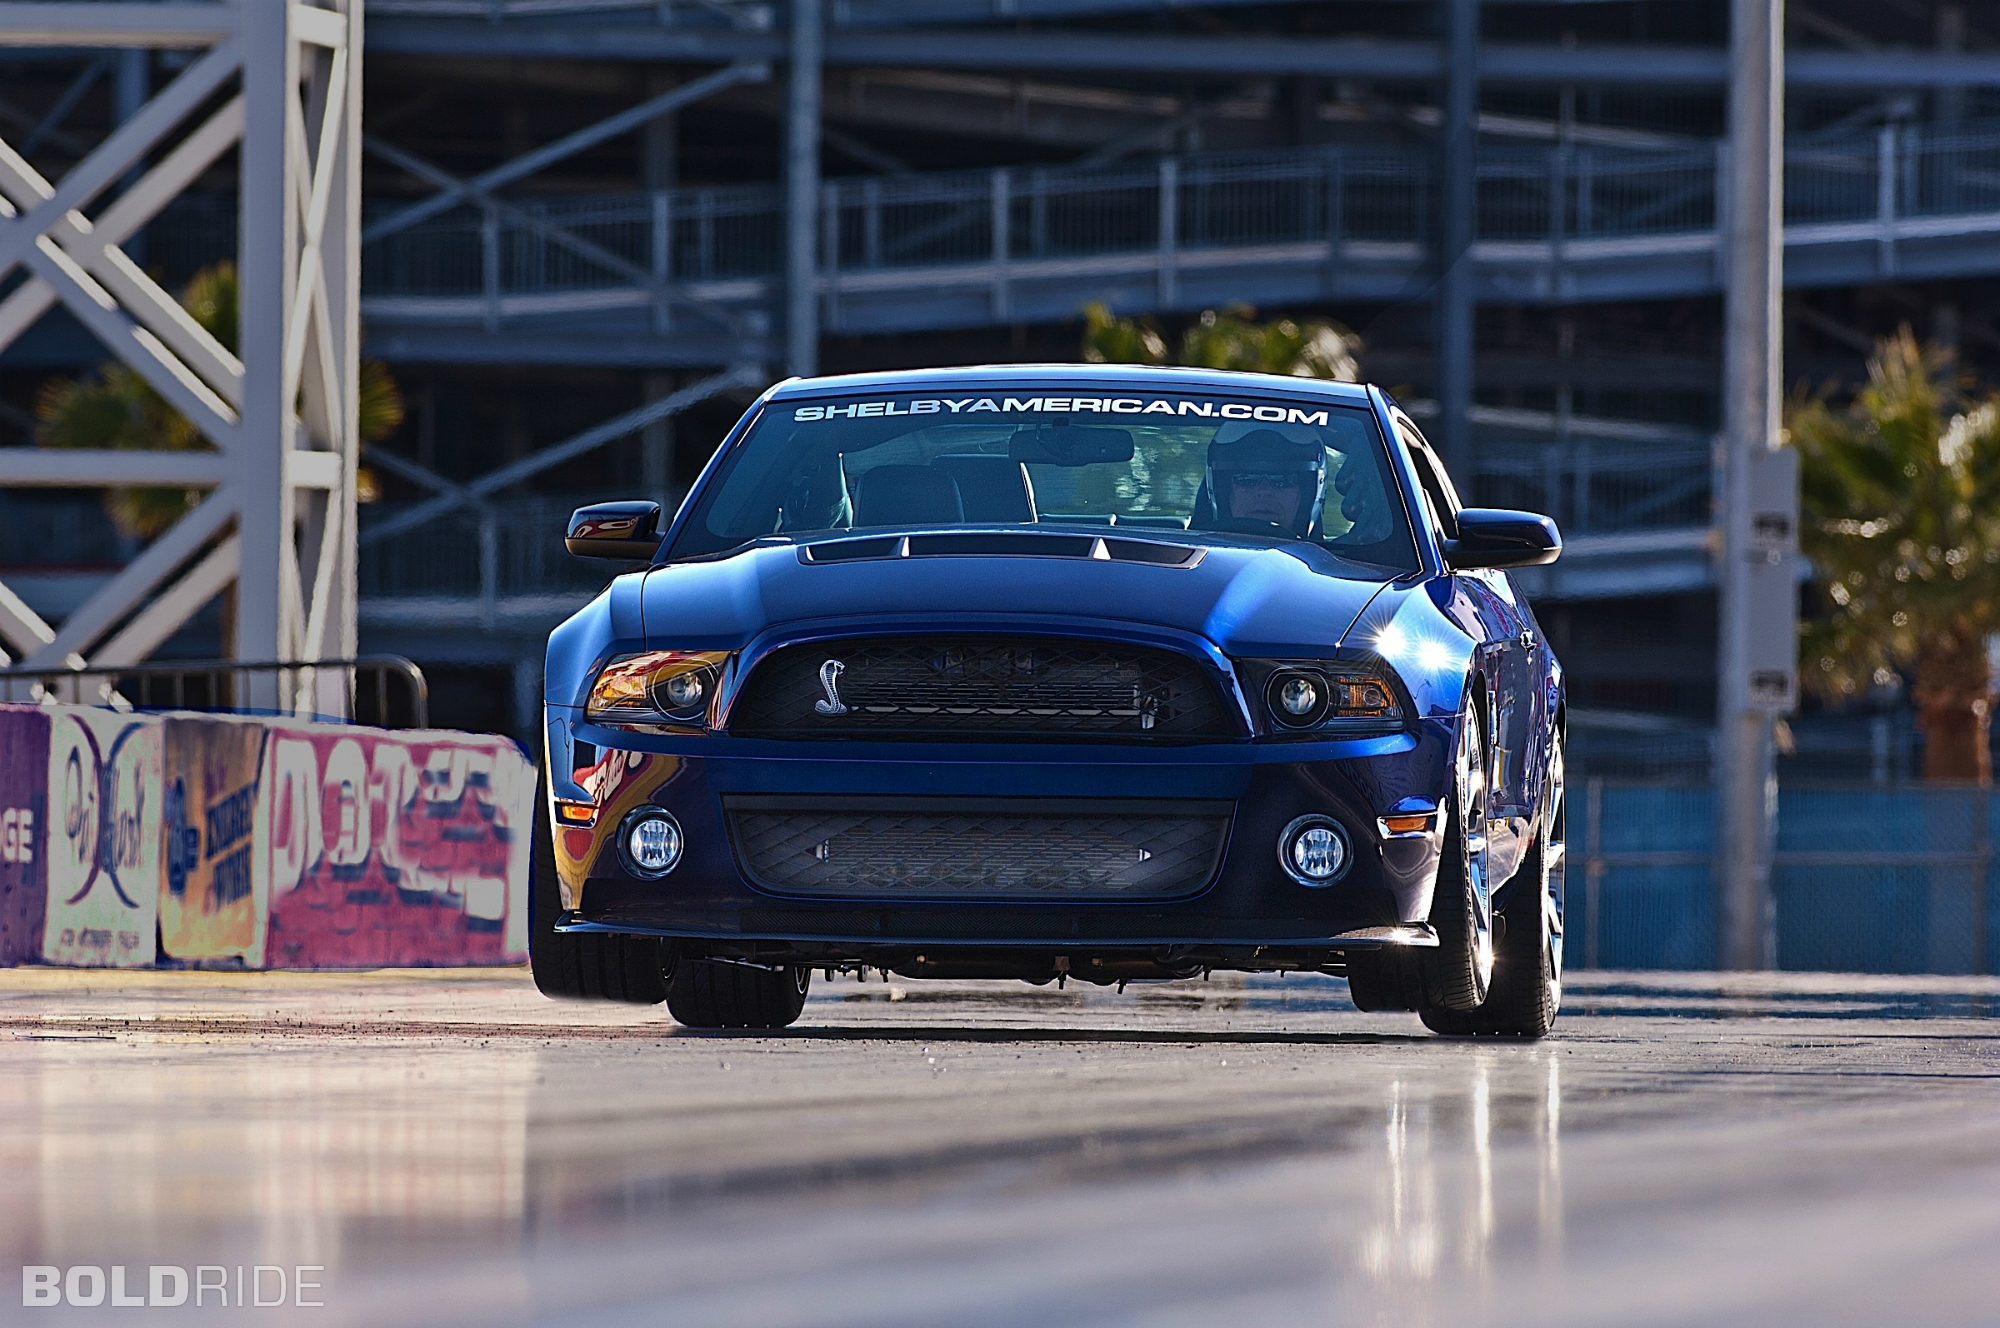 2012 Ford Mustang Shelby 1000 drag racing race car hot rod muscle cars